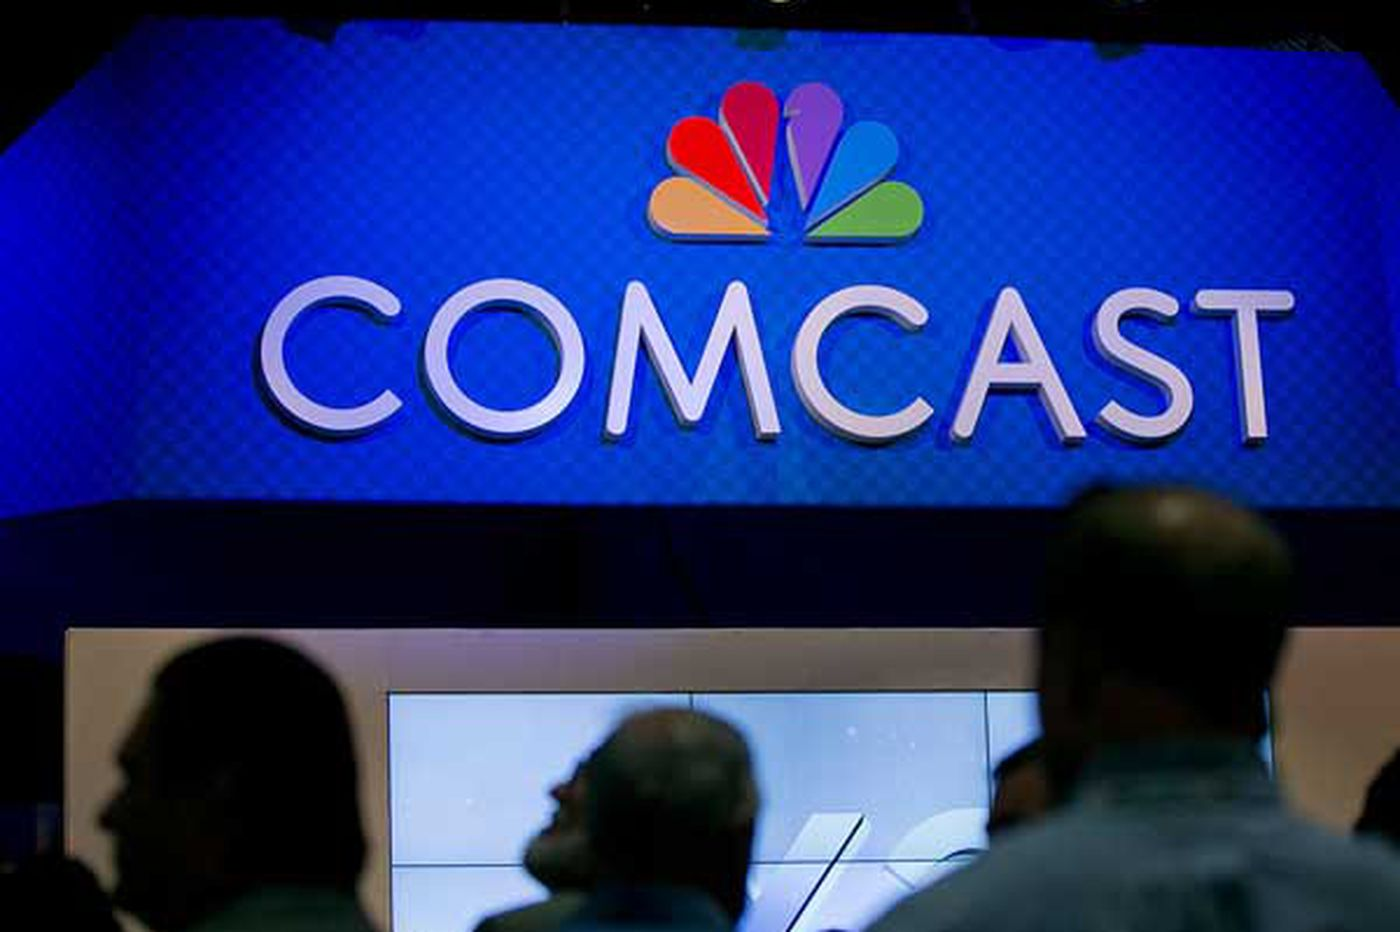 Comcast shareholders approve acquisition of Time Warner Cable